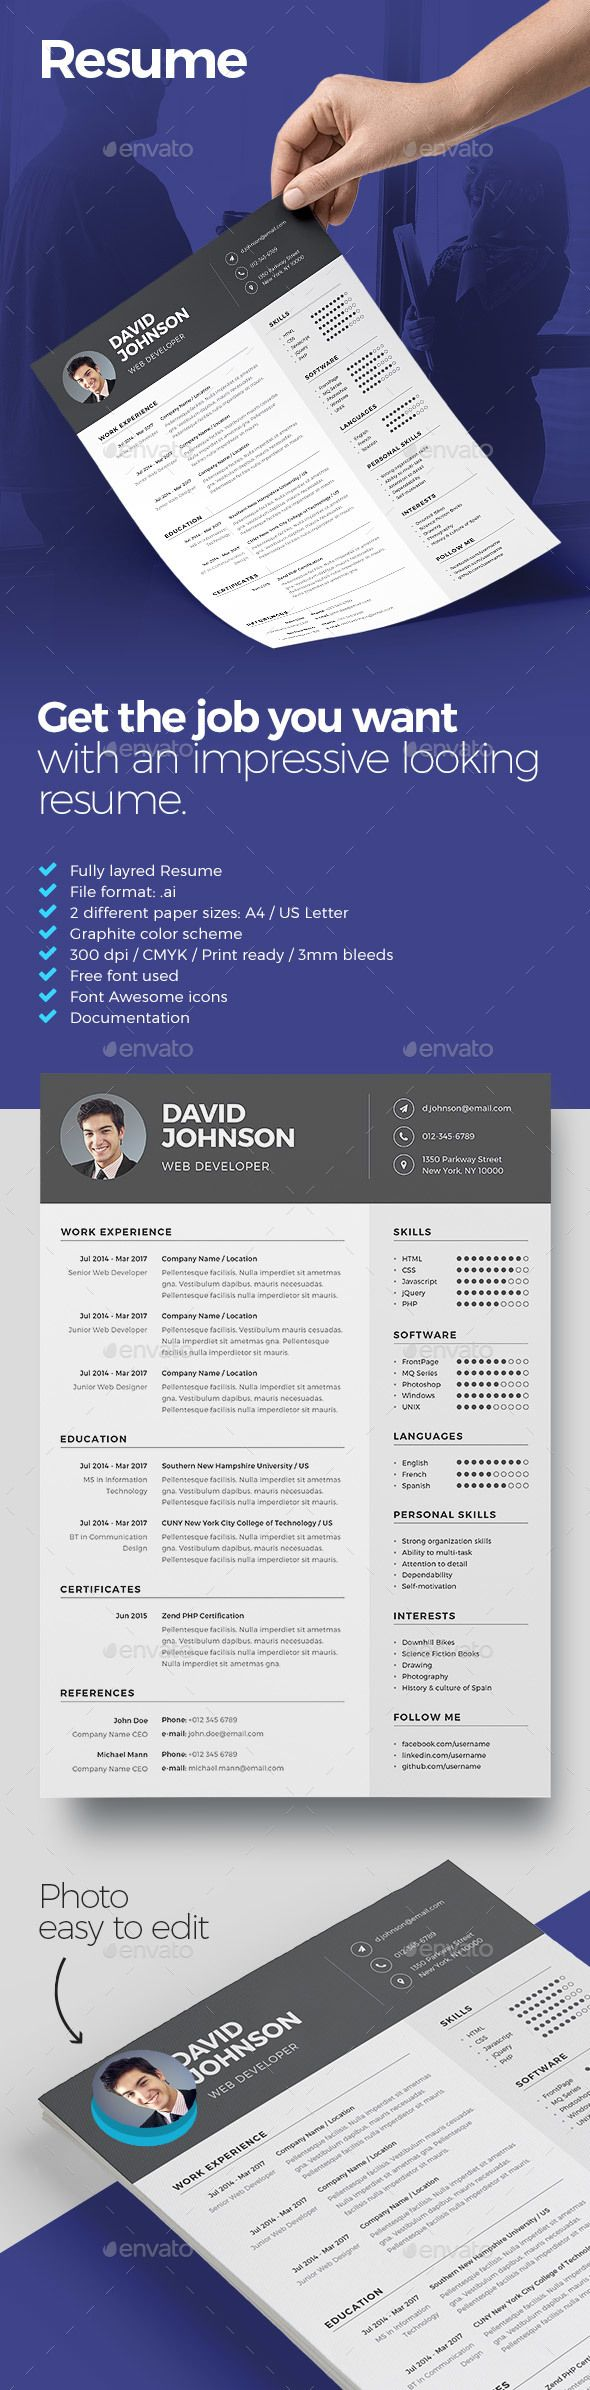 3980 best images about layout on pinterest